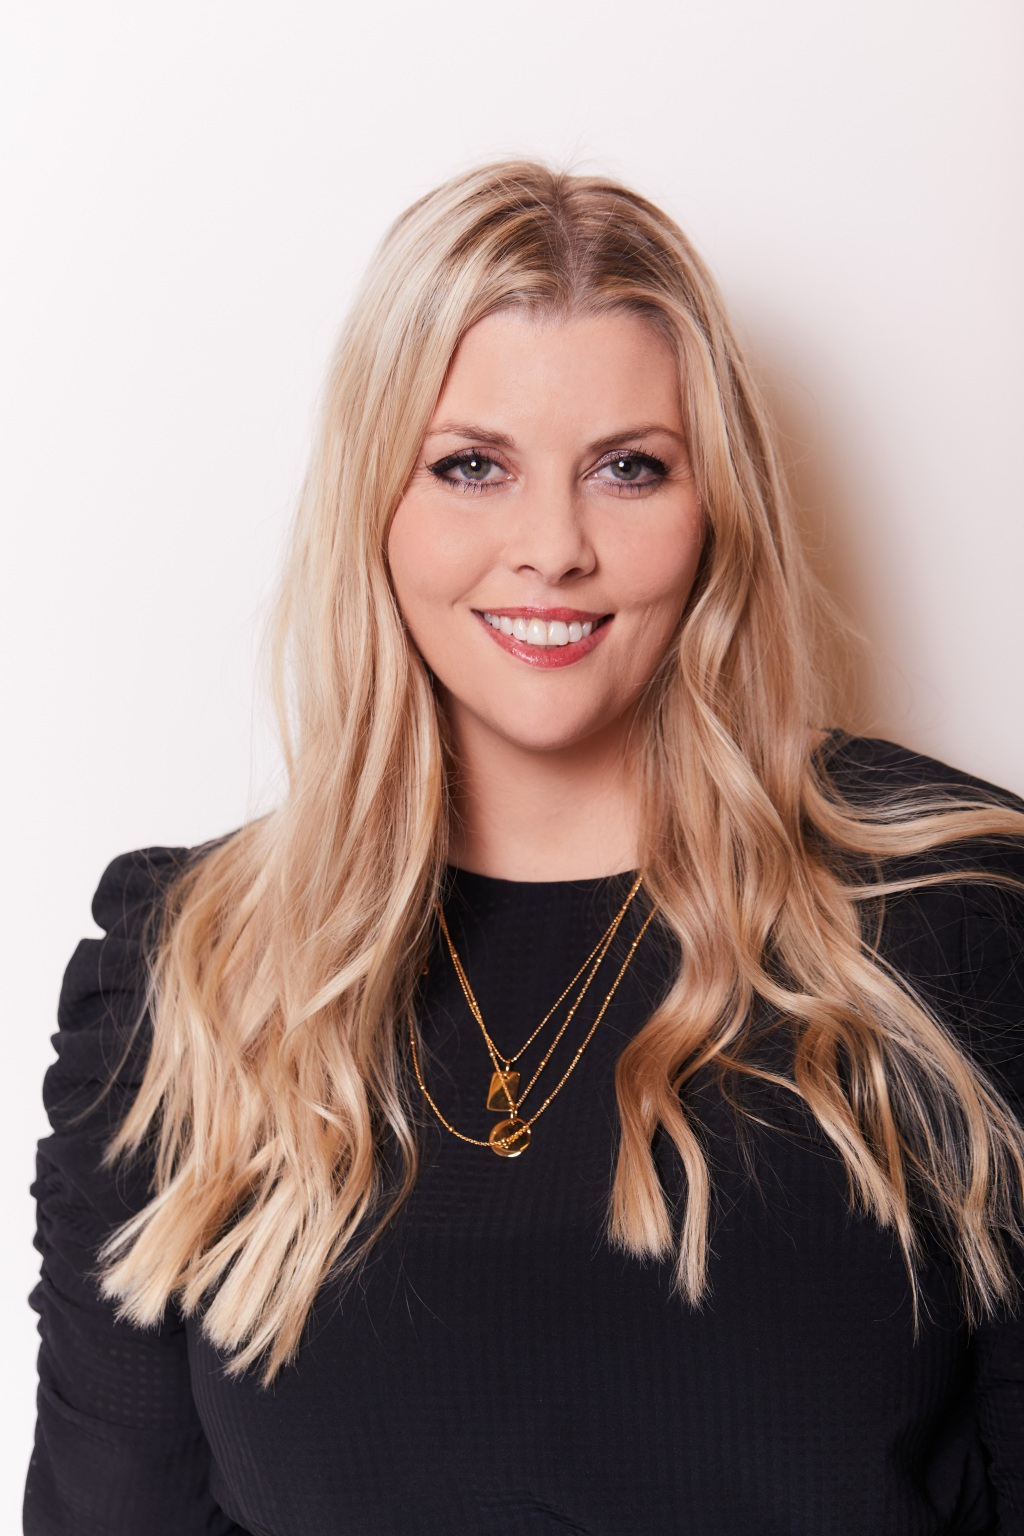 Rebecca Taylor Joins Jonesworks; Brings Clients & Will Run Point On Dwayne Johnson